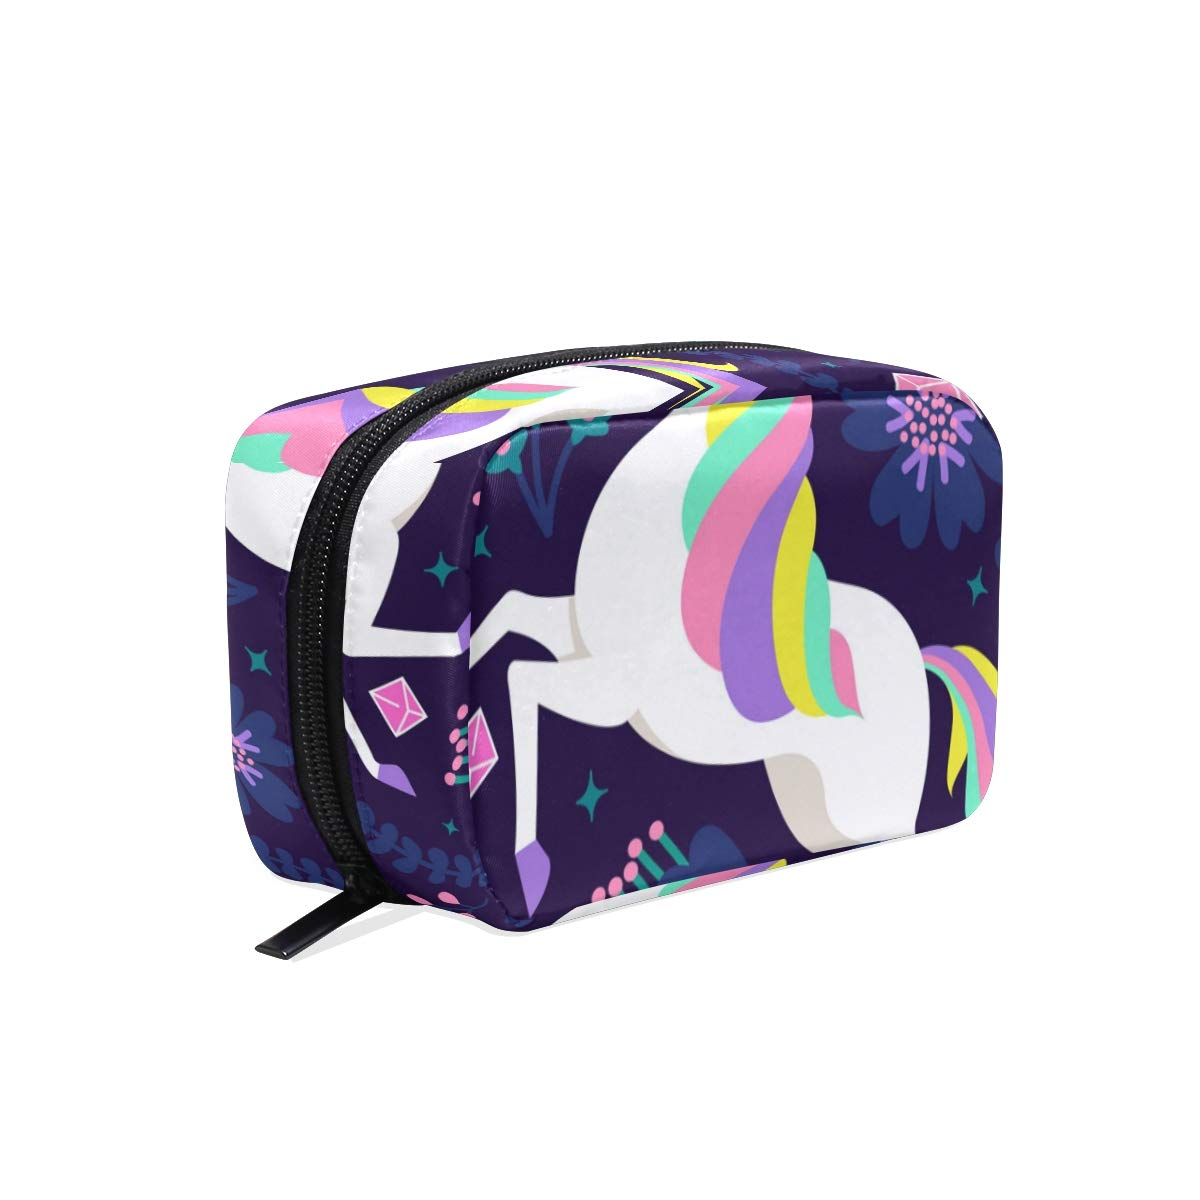 ILEEY Flat Unicorn With Psicodelic Colors Cosmetic Pouch Clutch Makeup Bag Travel Organizer Case Toiletry Pouch for Women